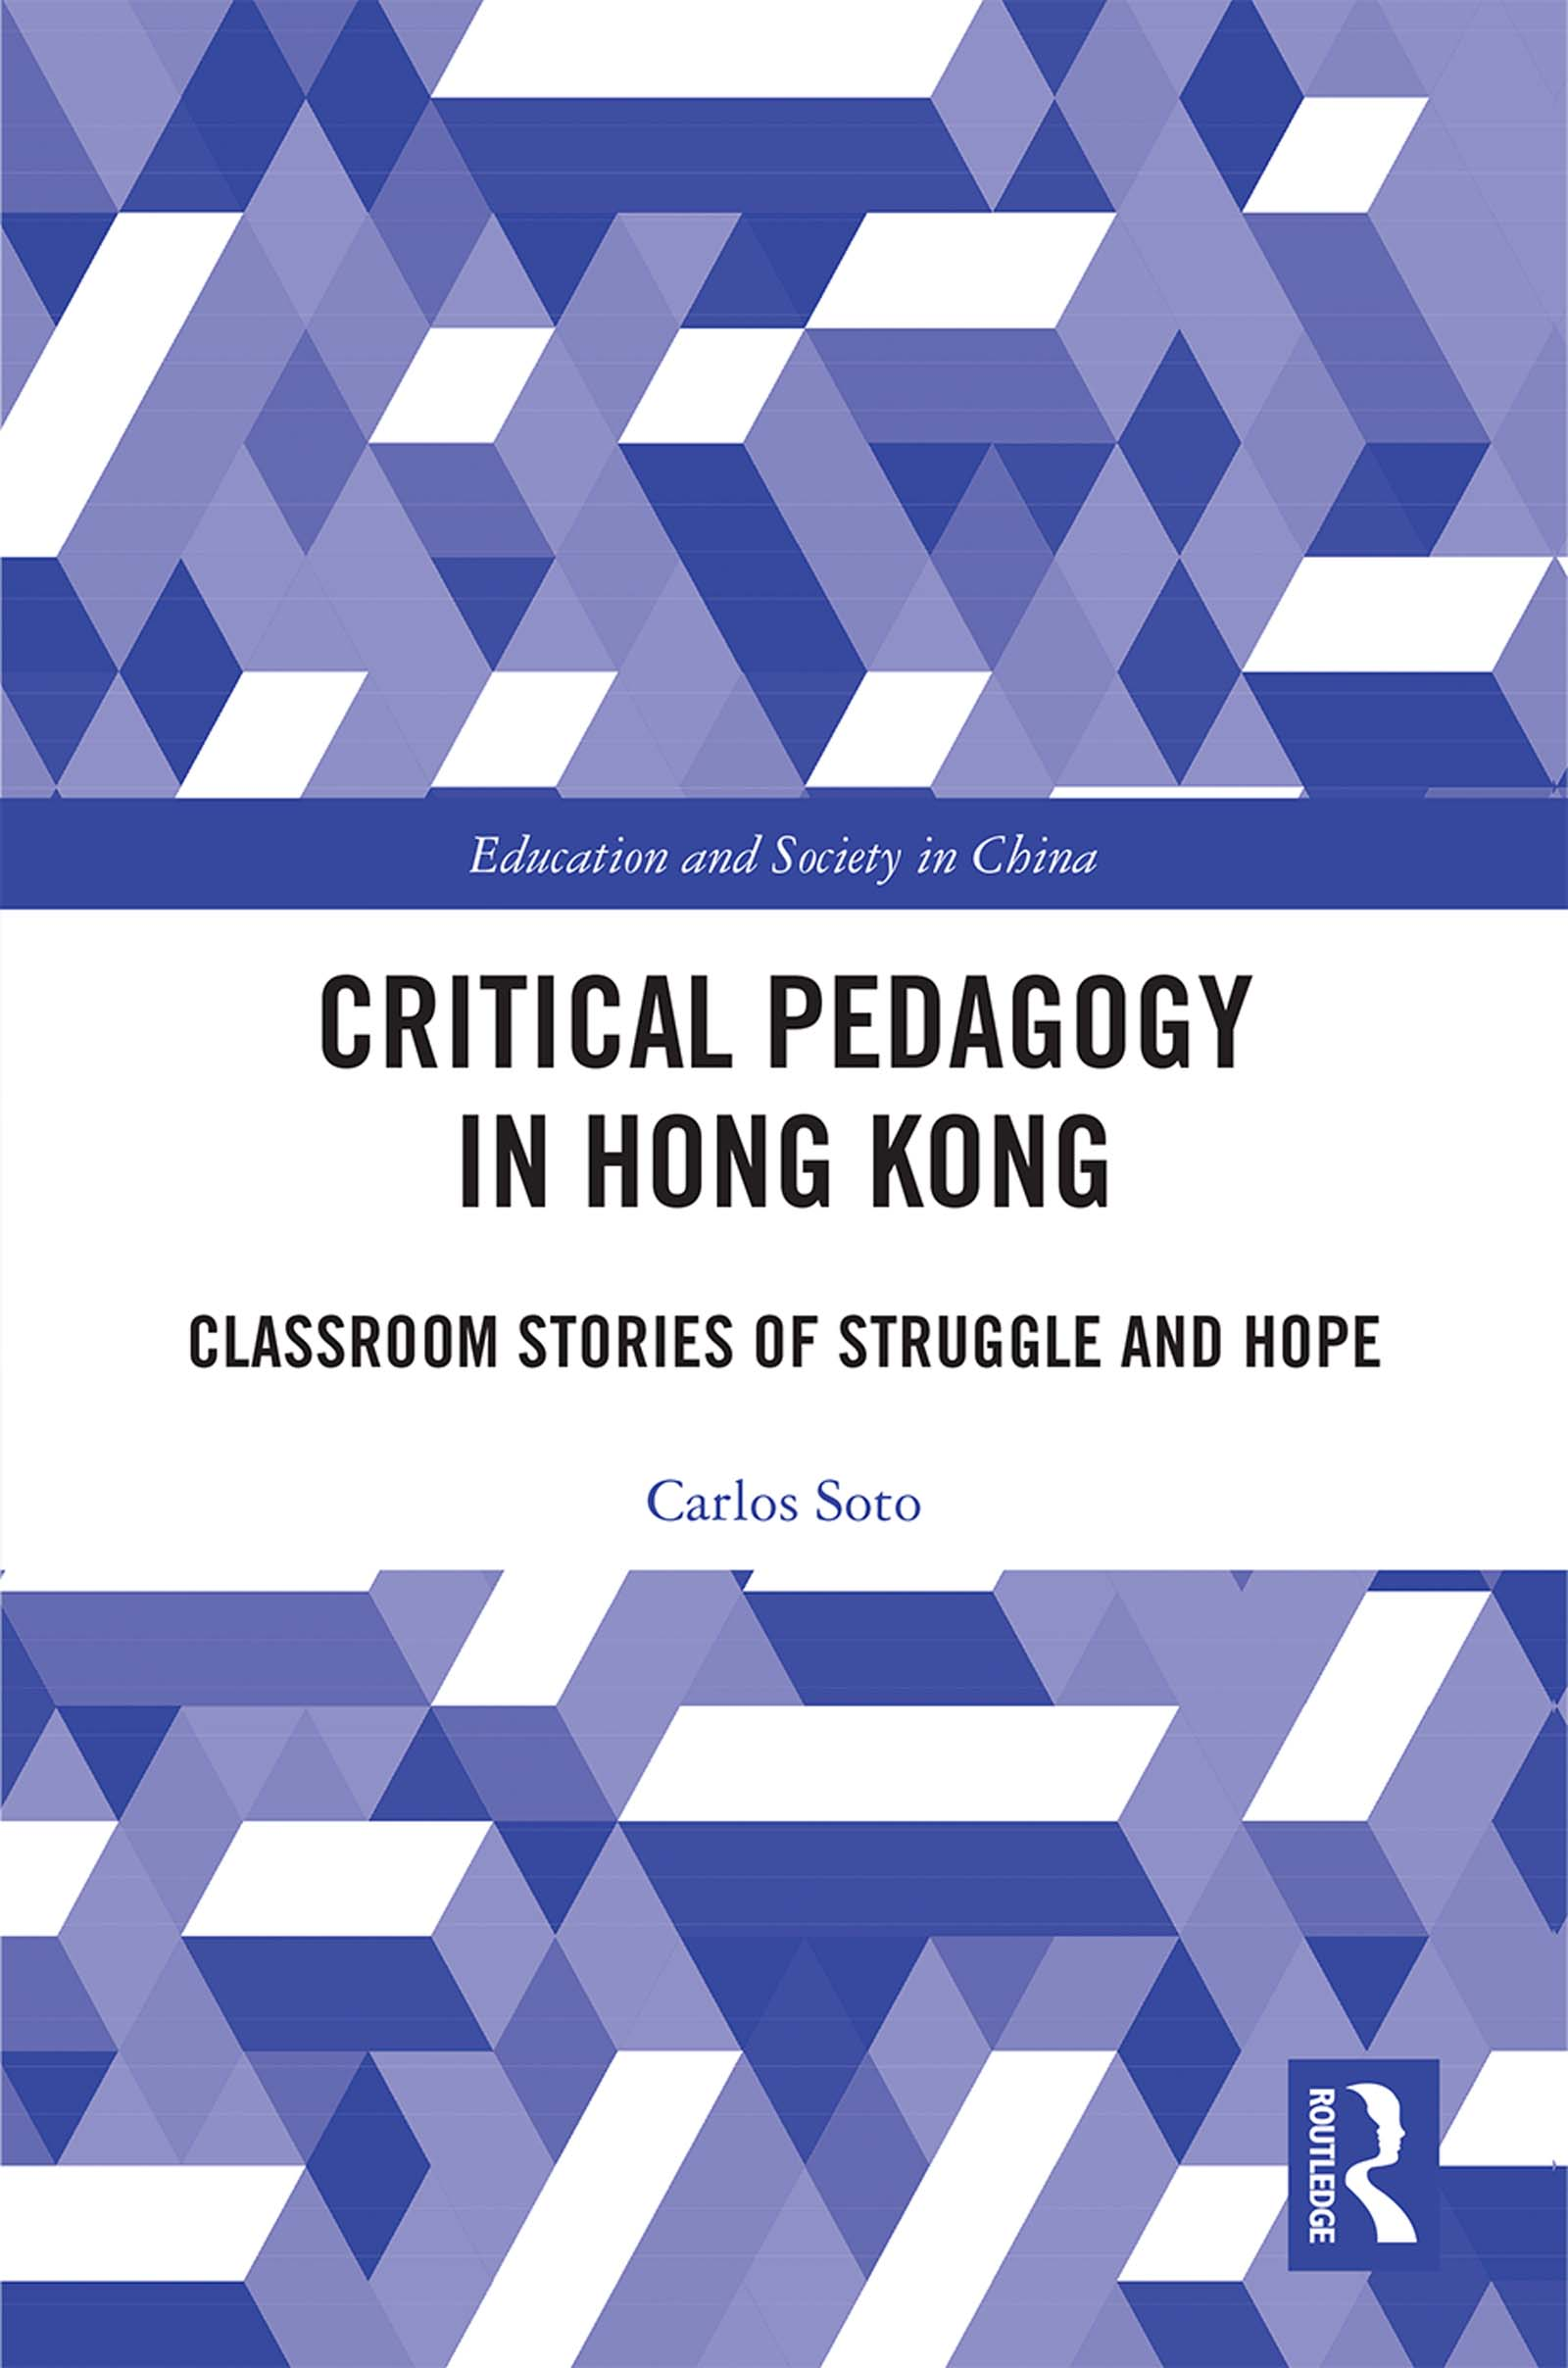 Critical Pedagogy in Hong Kong: Classroom Stories of Struggle and Hope book cover